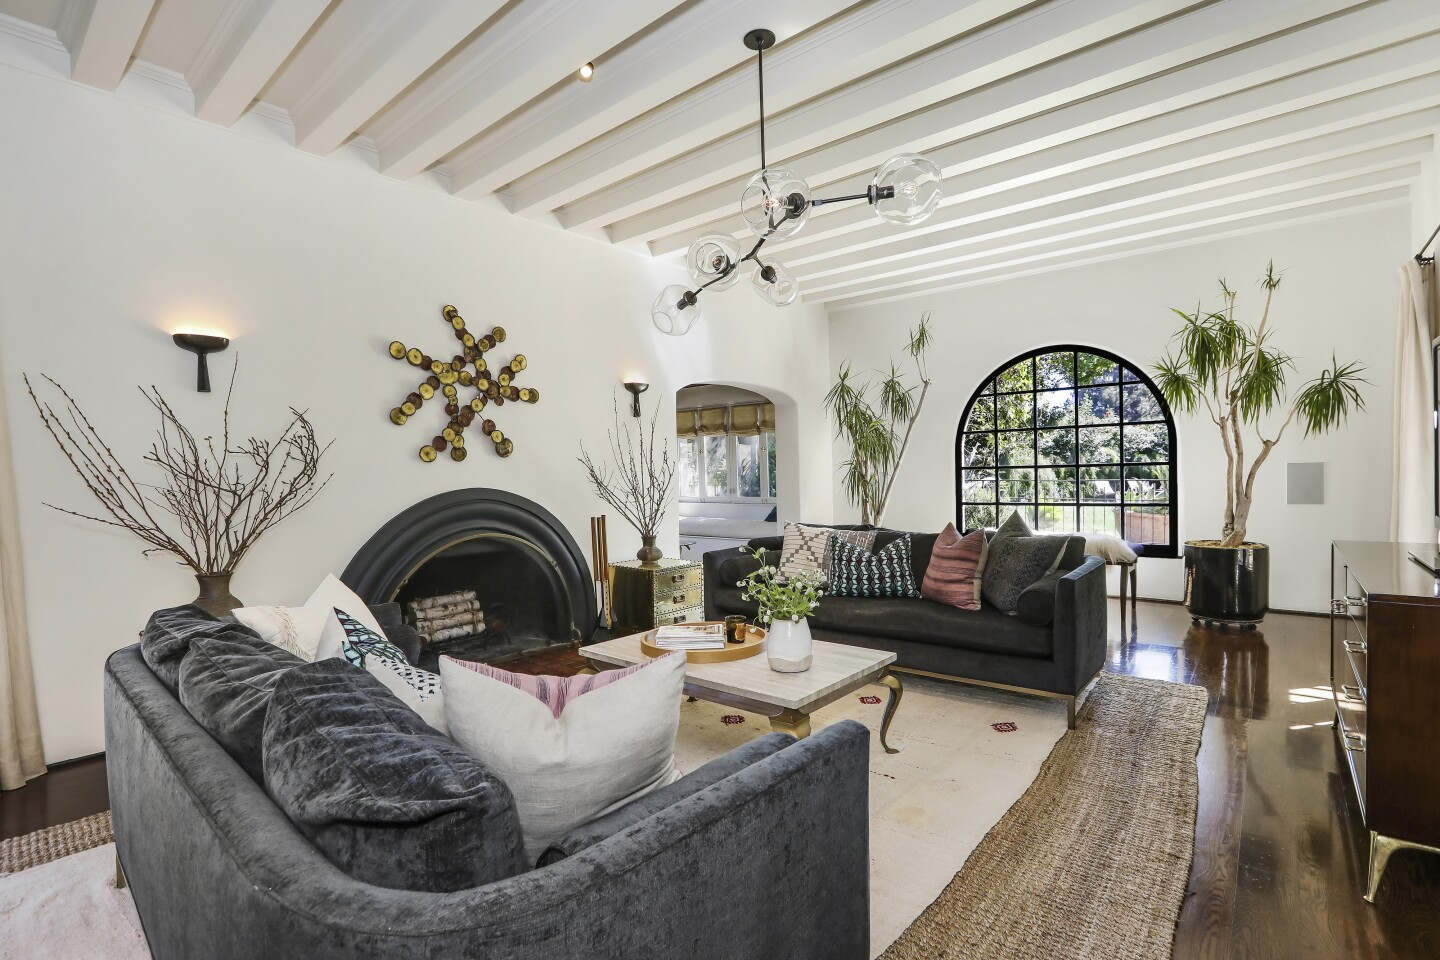 Early film star Gale Sondergaard's onetime home | Hot Property - Los Angeles Times